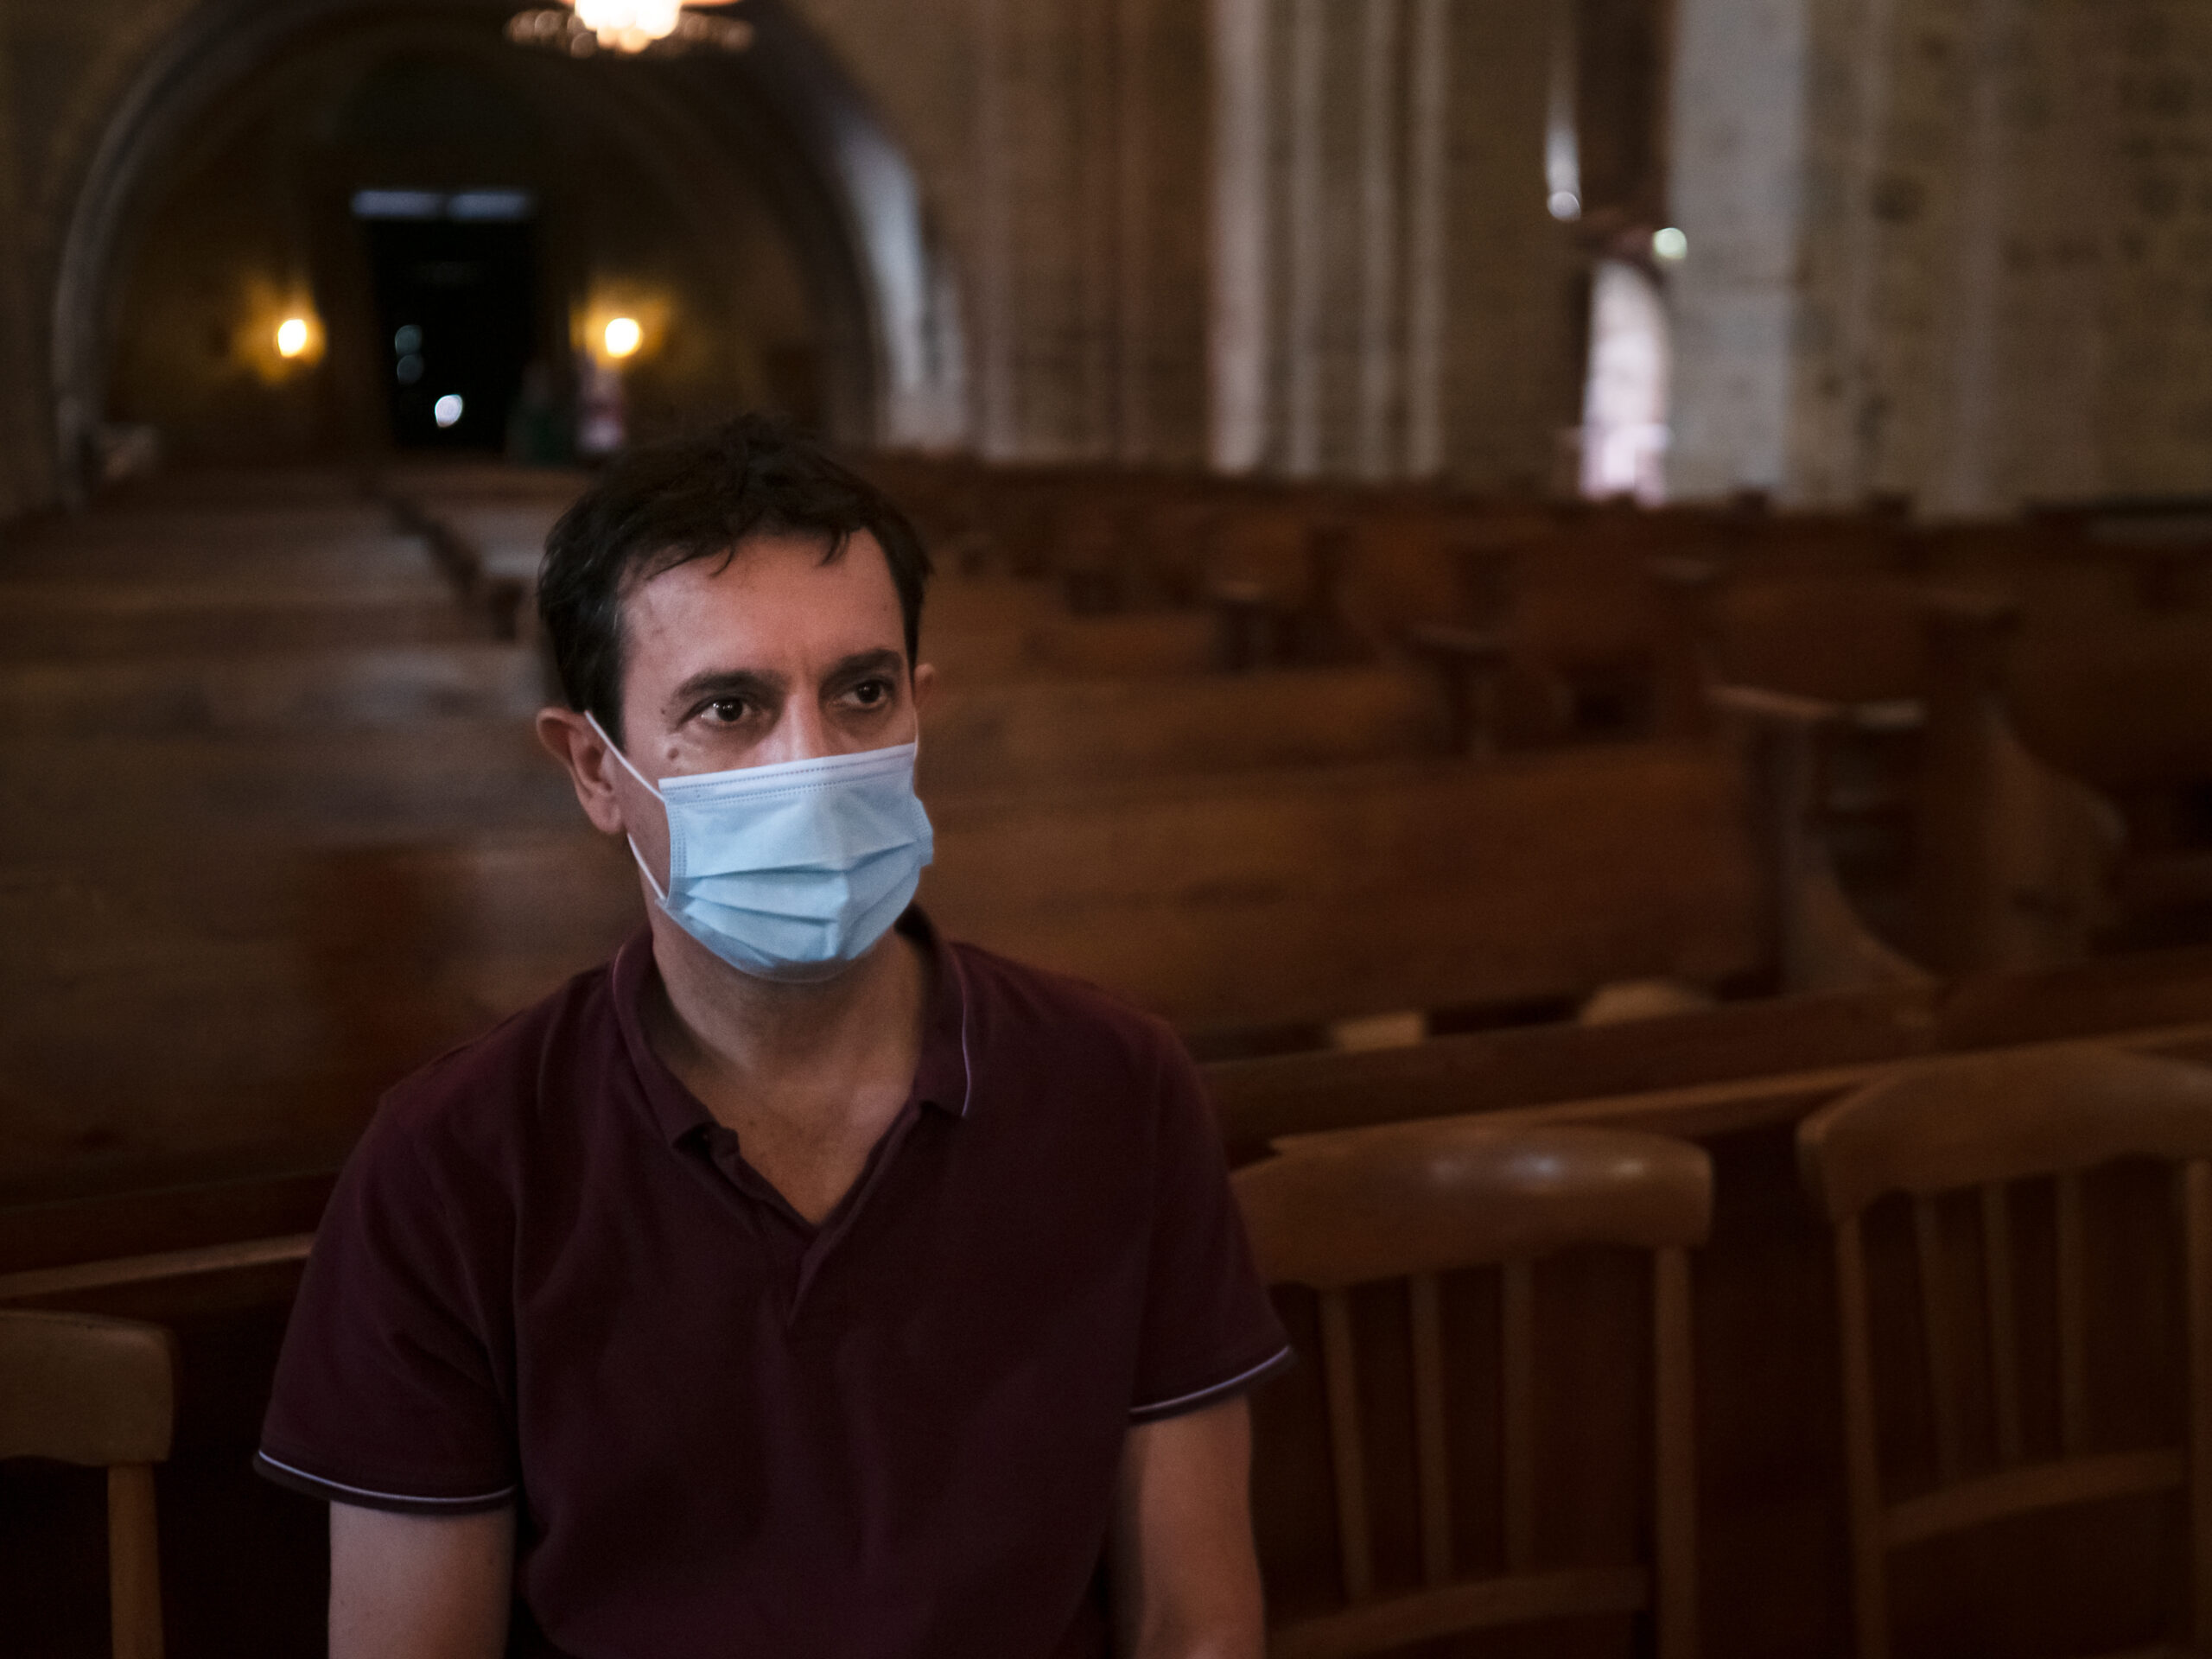 Christian charity in the new phase of the pandemic